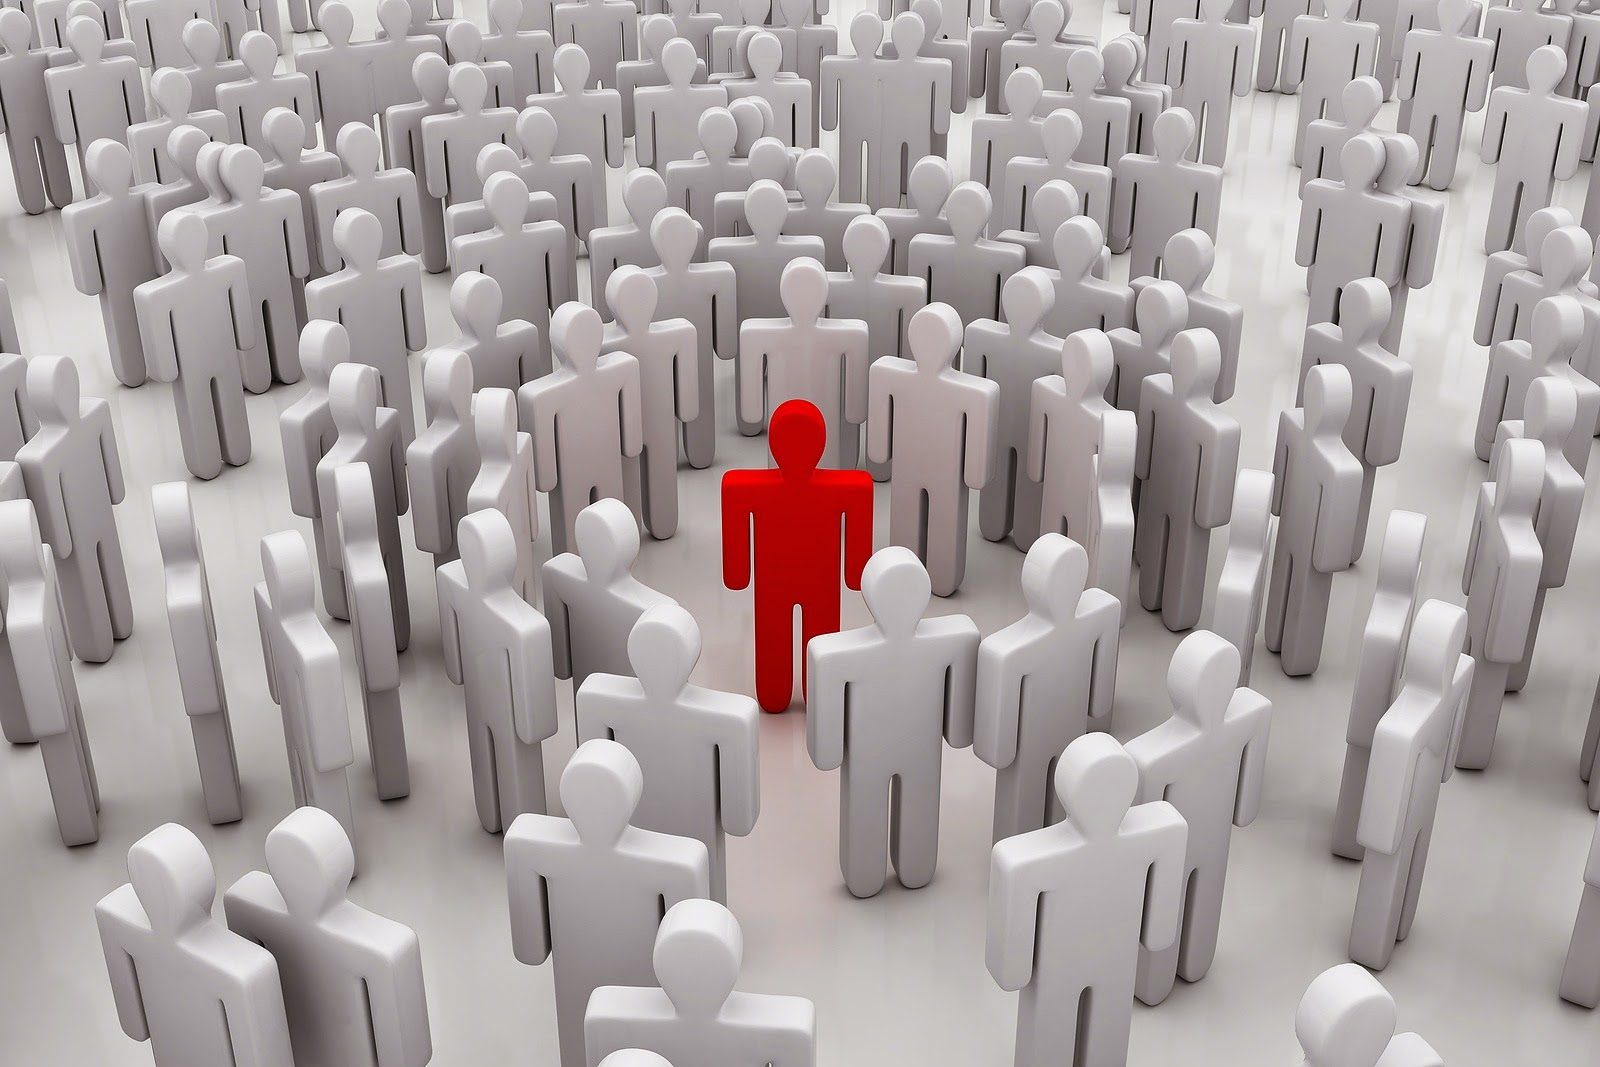 One Person Standing Out In A Crowd 12 Doses of Culture Sh...